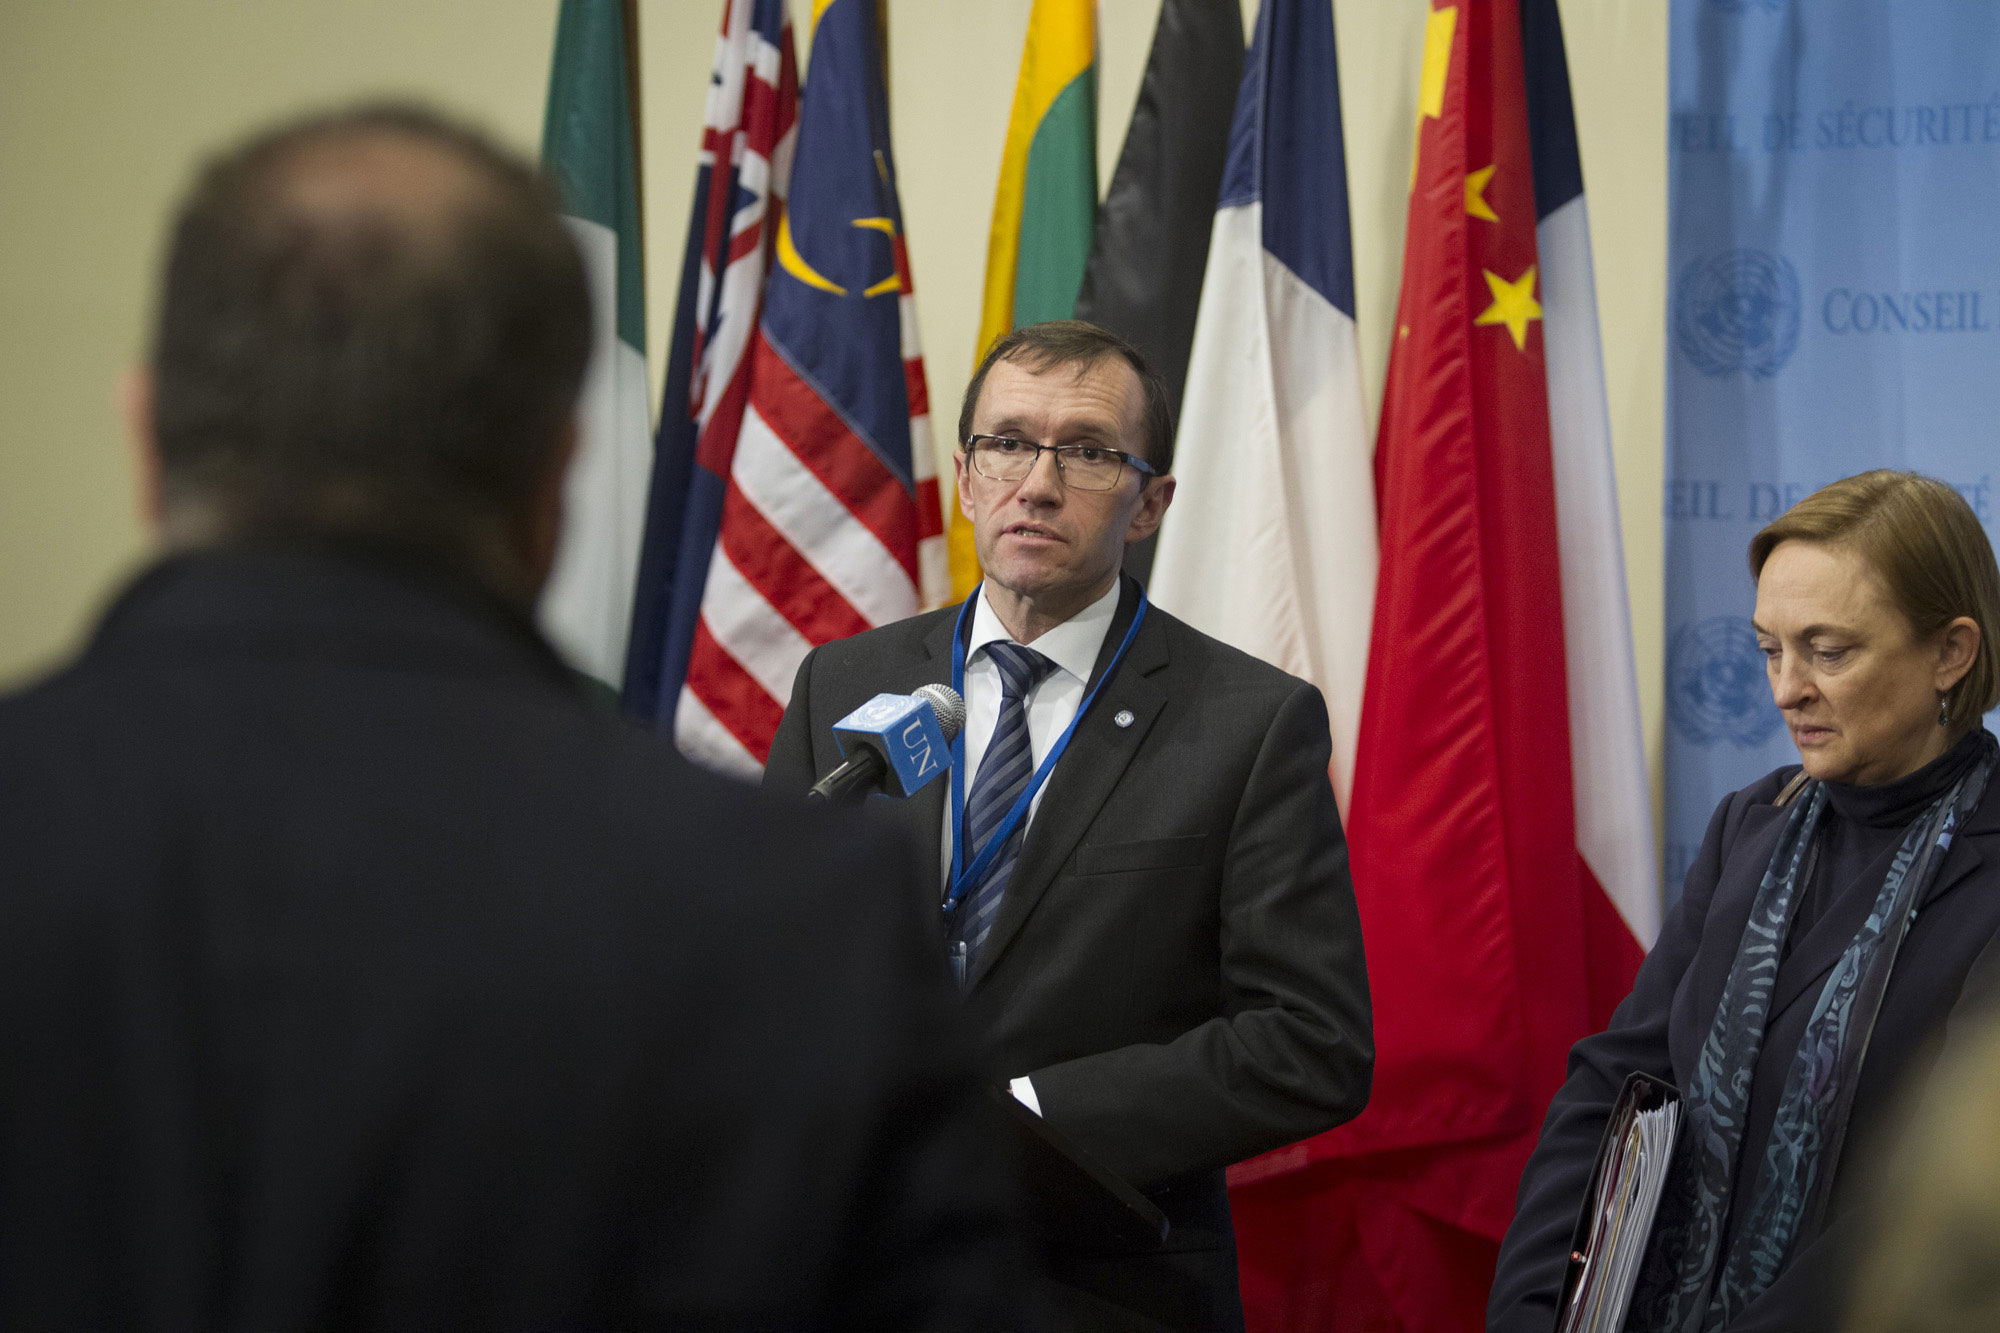 Following a Security Council meeting on Cyprus, UN envoy Espen Barth Eide briefs the press with the Head of the UN Peacekeeping Force in Cyprus (UNFICYP), Lisa Buttenheim (right). UN Photo/Loey Felipe